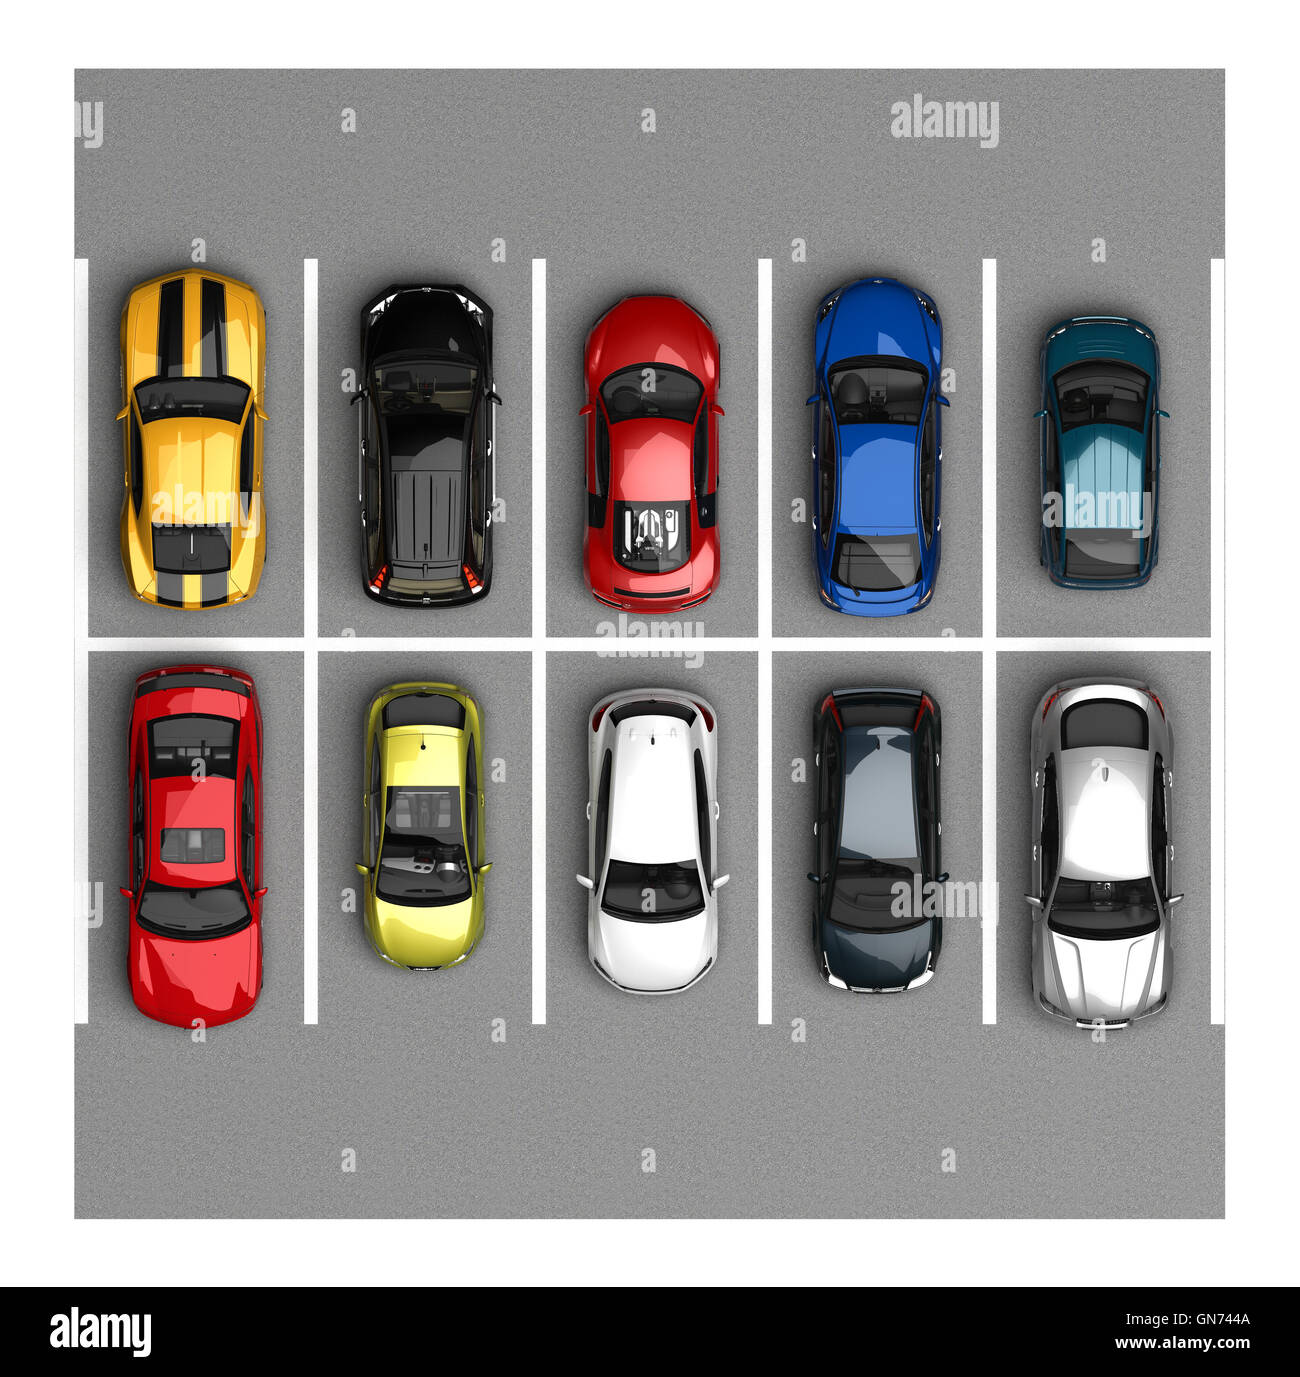 Cars Parking Cut Out Stock Images Pictures Alamy F430 Can Bus Diagram Part Top View Image